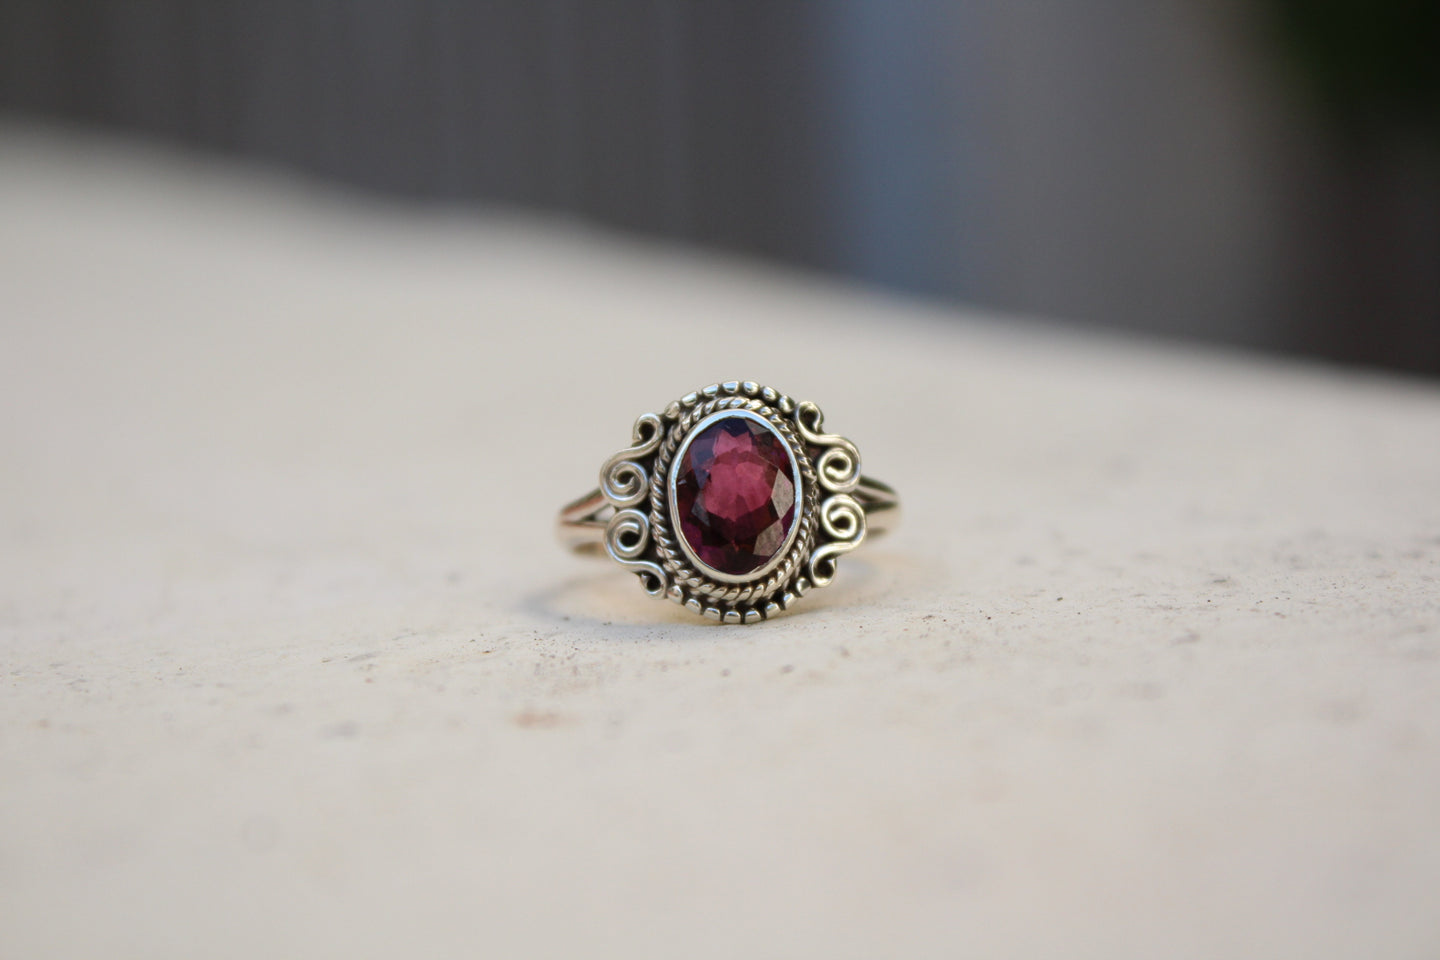 Size 7; Pink Tourmaline Ring